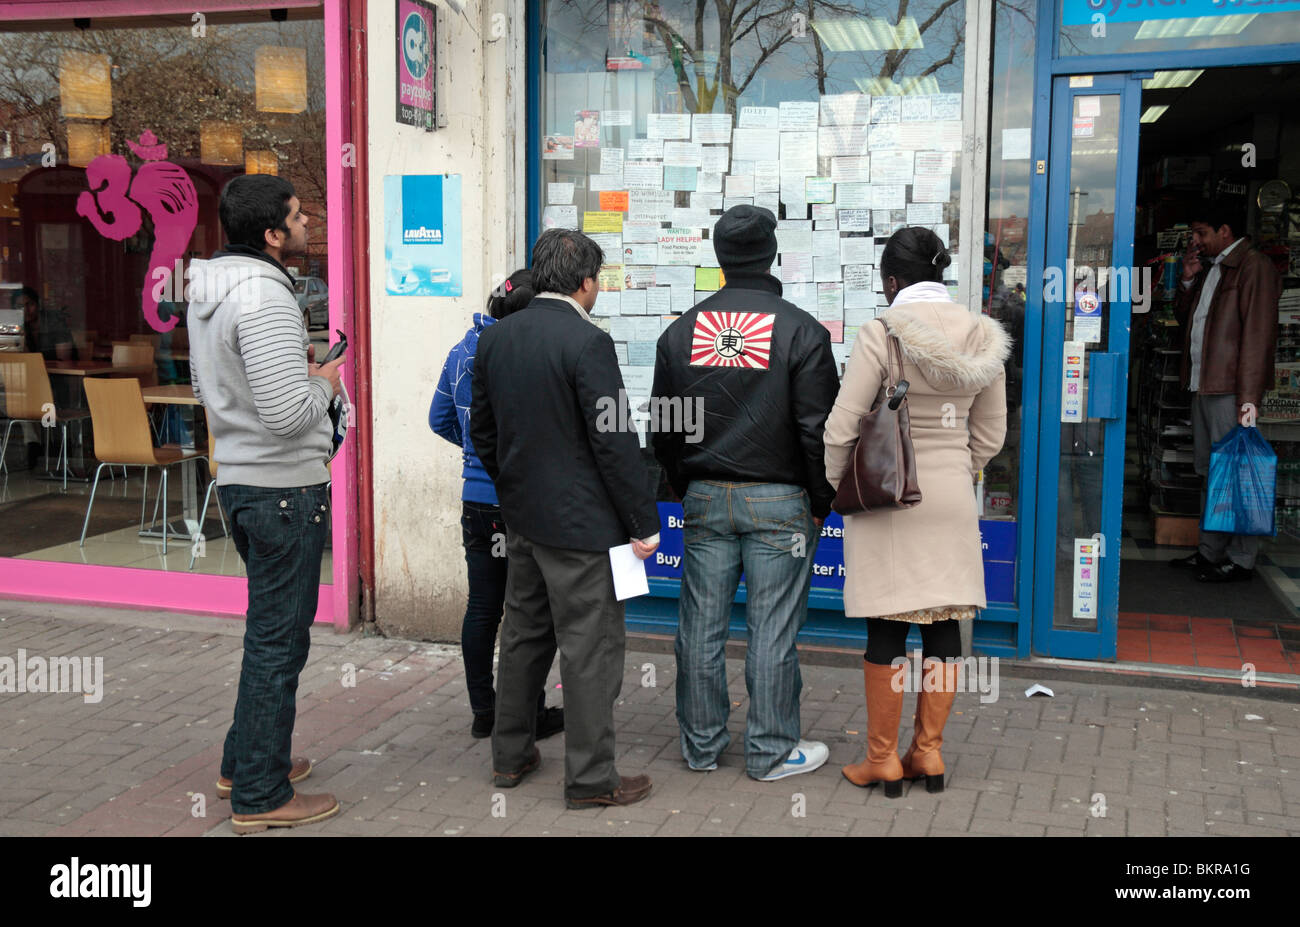 A group of people around a board full of small ads in a newsagent shop window in Hounslow West, Middx, UK. - Stock Image